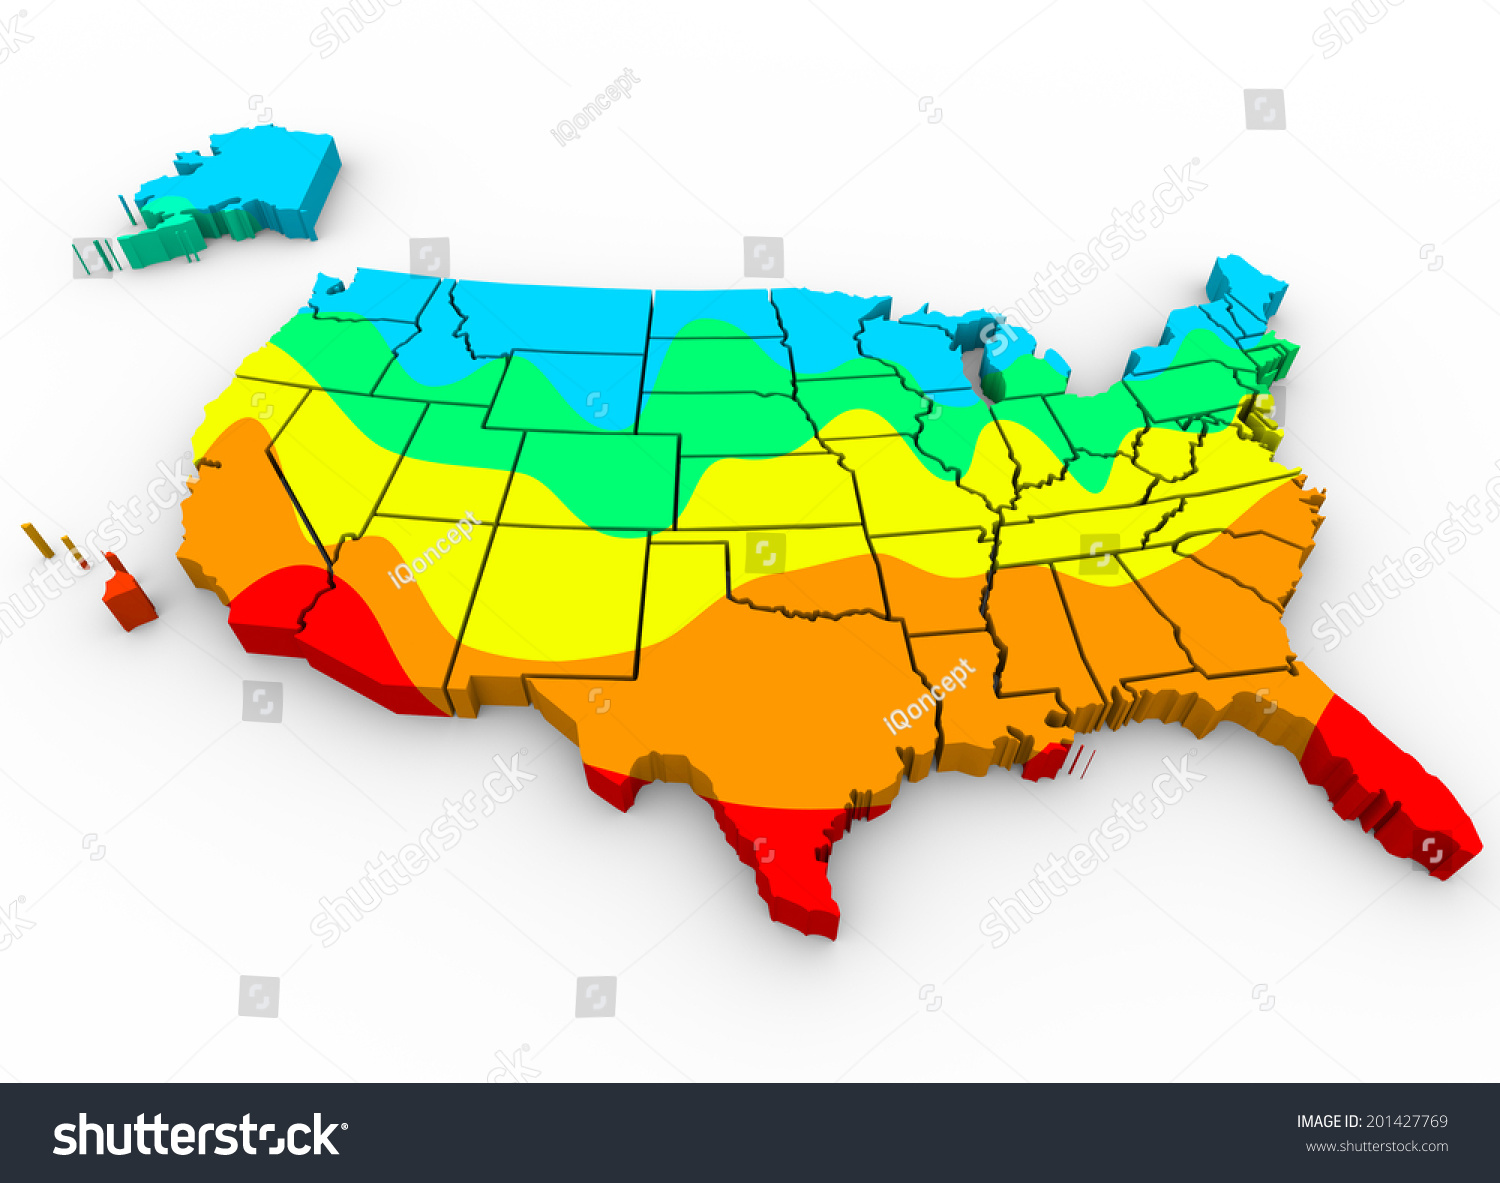 Map United States America Regions Color Stockillustration ...